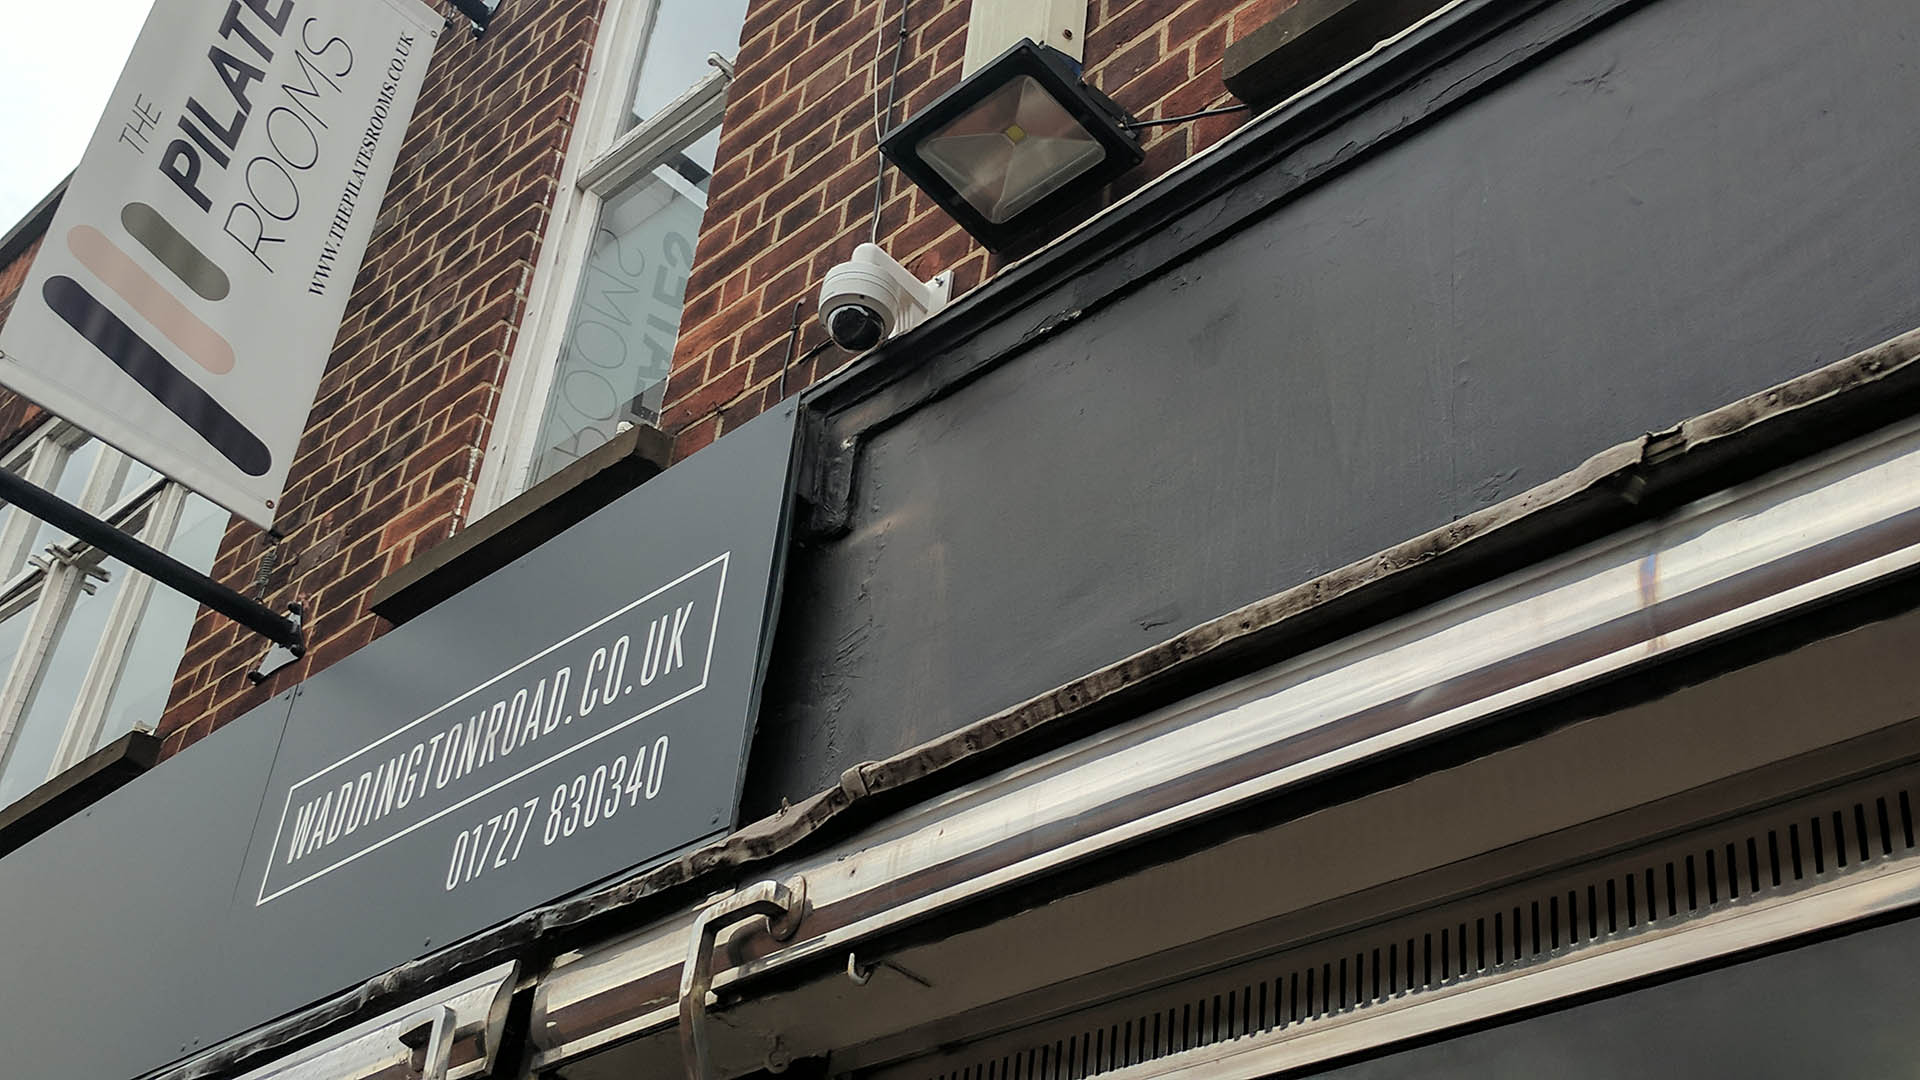 Commercial CCTV Installation in St Albans